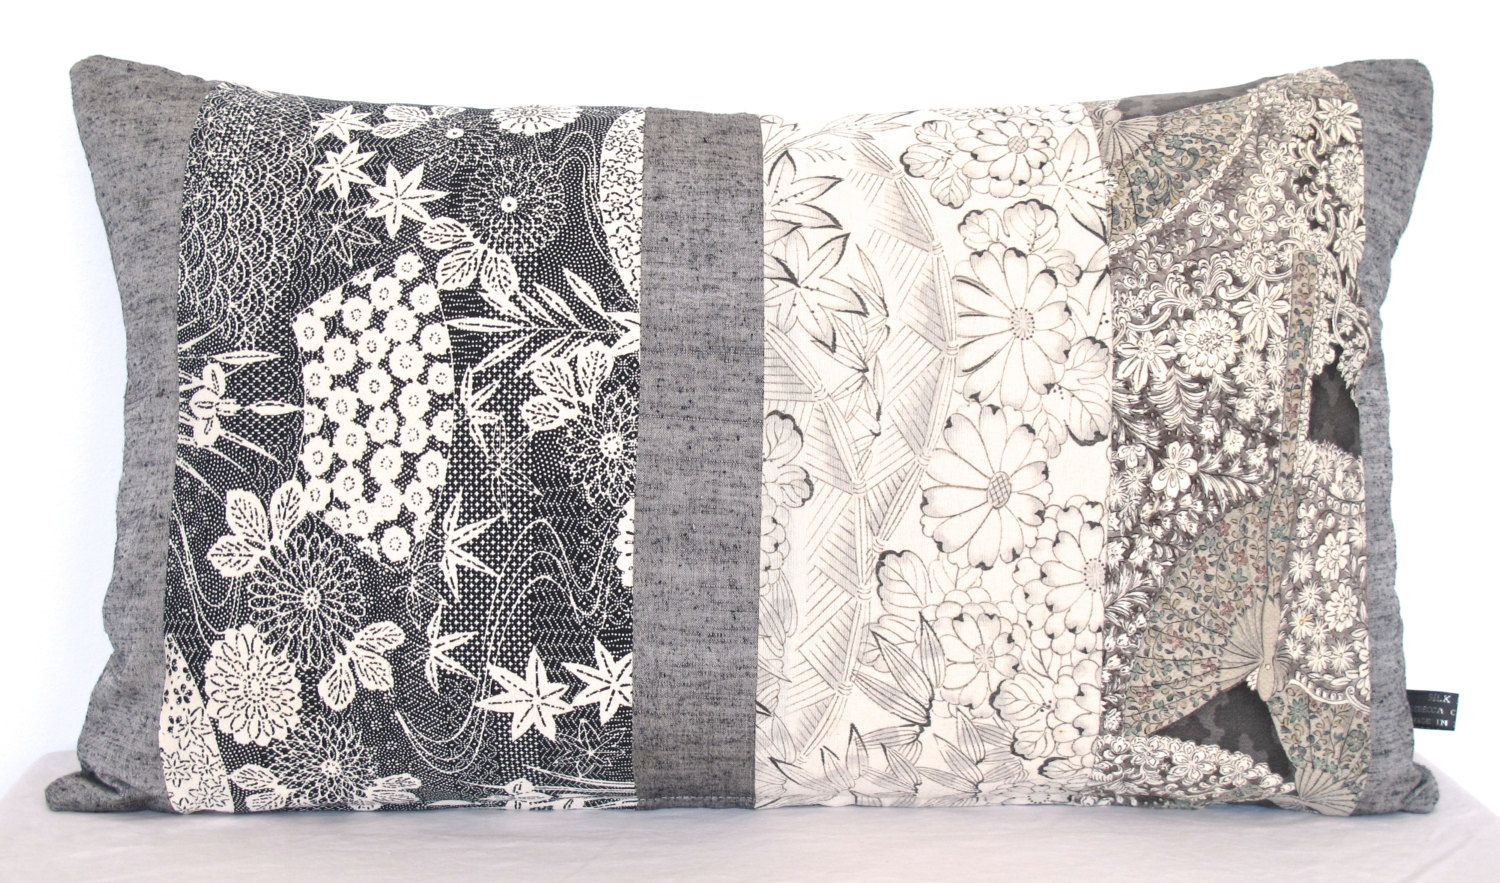 Oblong Decorative Pillow Cushion In Black White Grey Floral